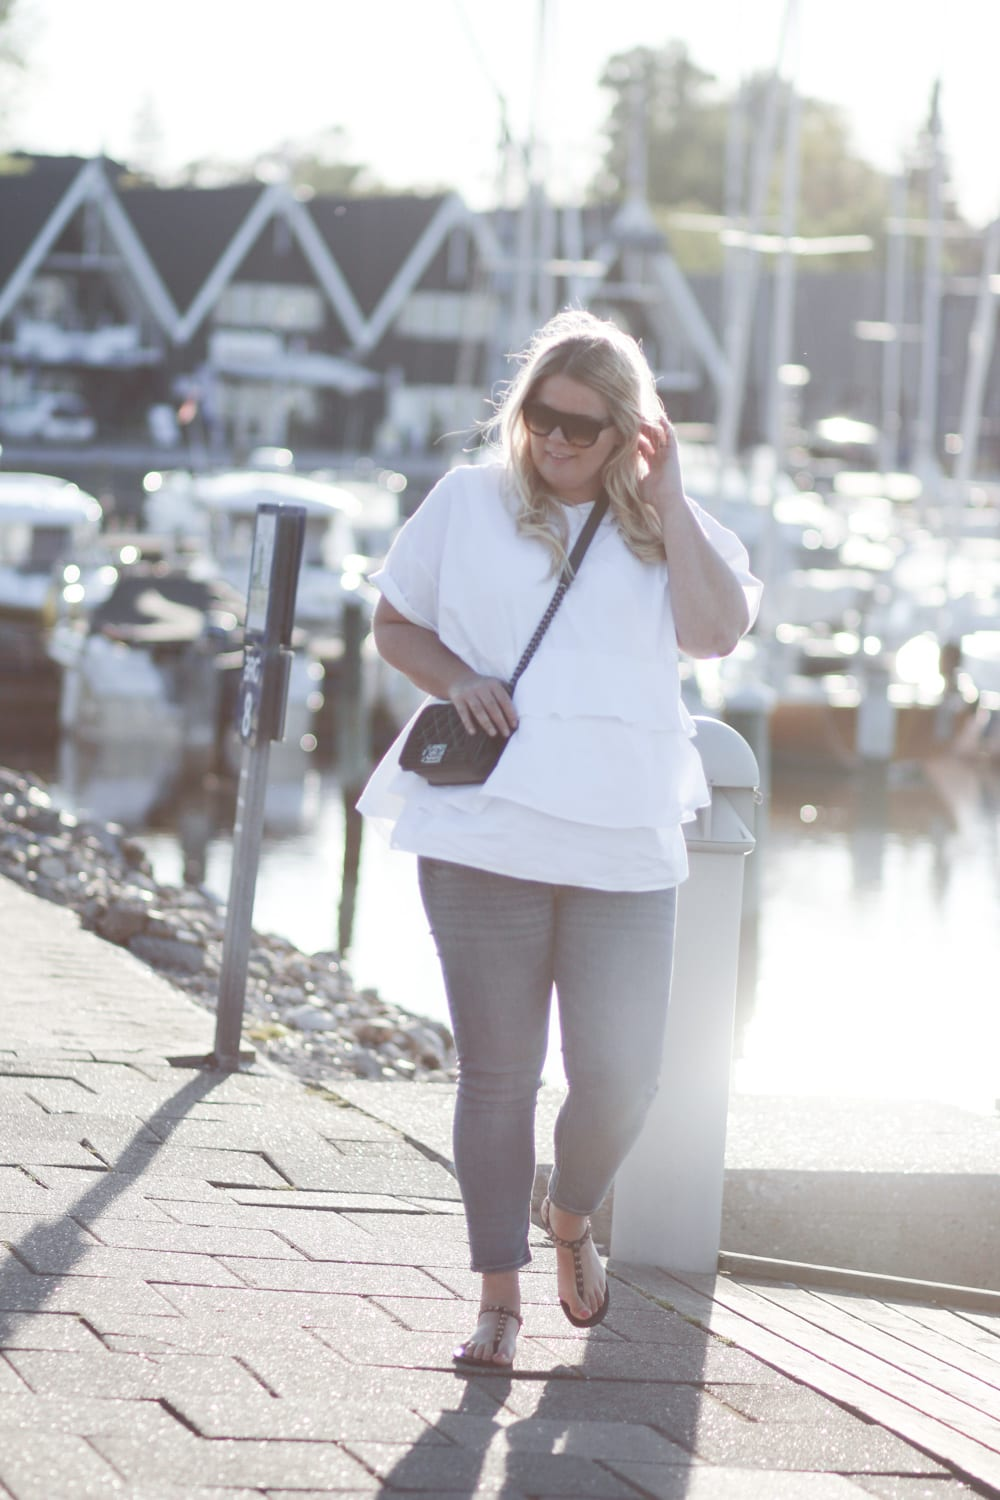 acie-outfit-rungsted-zara-tee-flaeser-celine-18-of-23